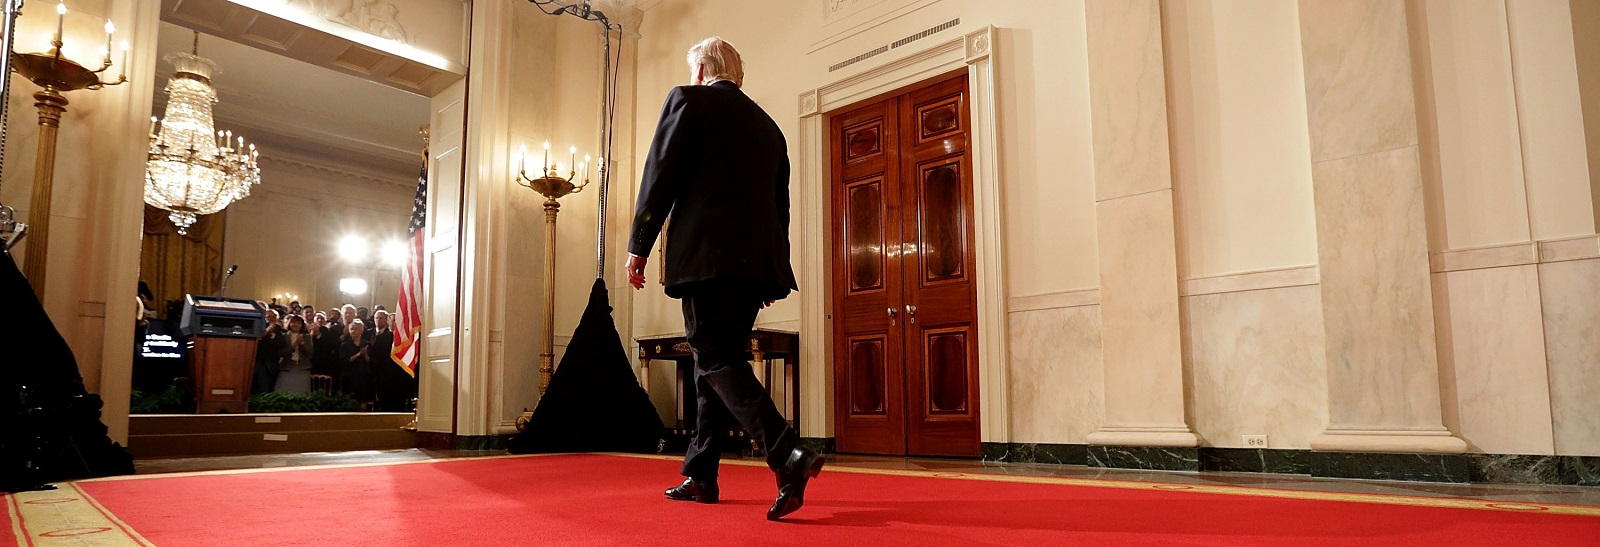 US President Donald Trump in the White House, January 31, 2017. (Photo:Chip Somodevilla/Getty Images)